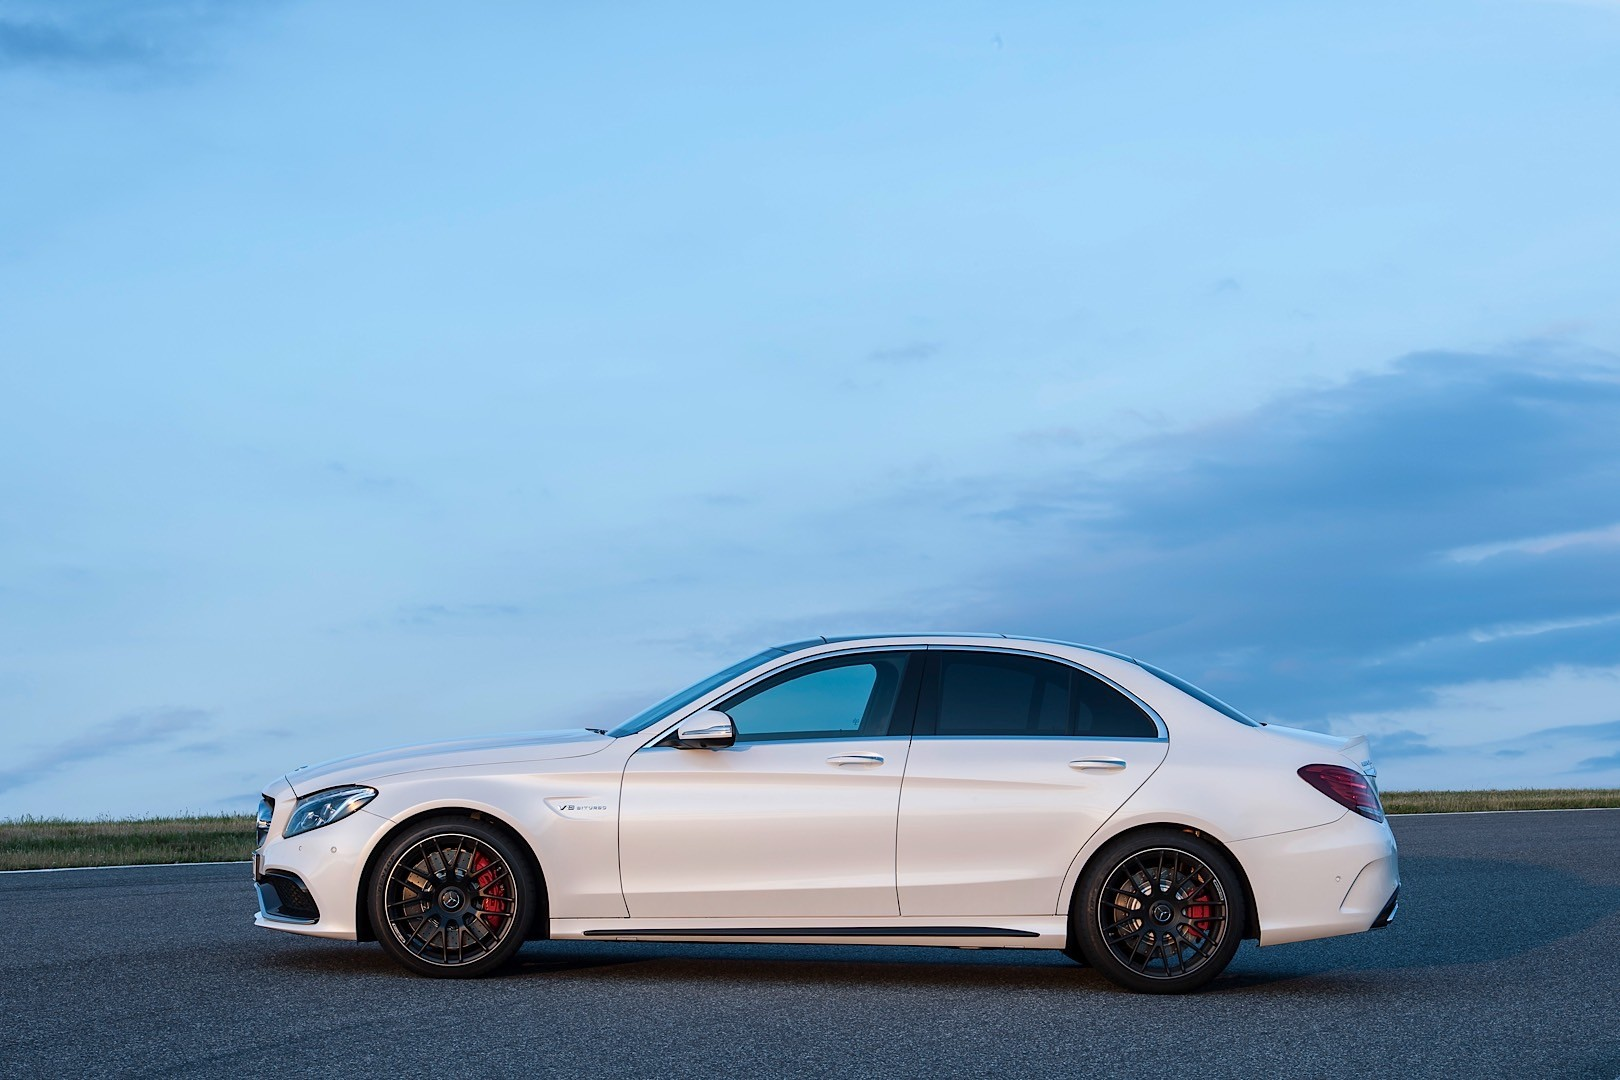 2014 mercedes c63 amg edition 507 us pricing revealed